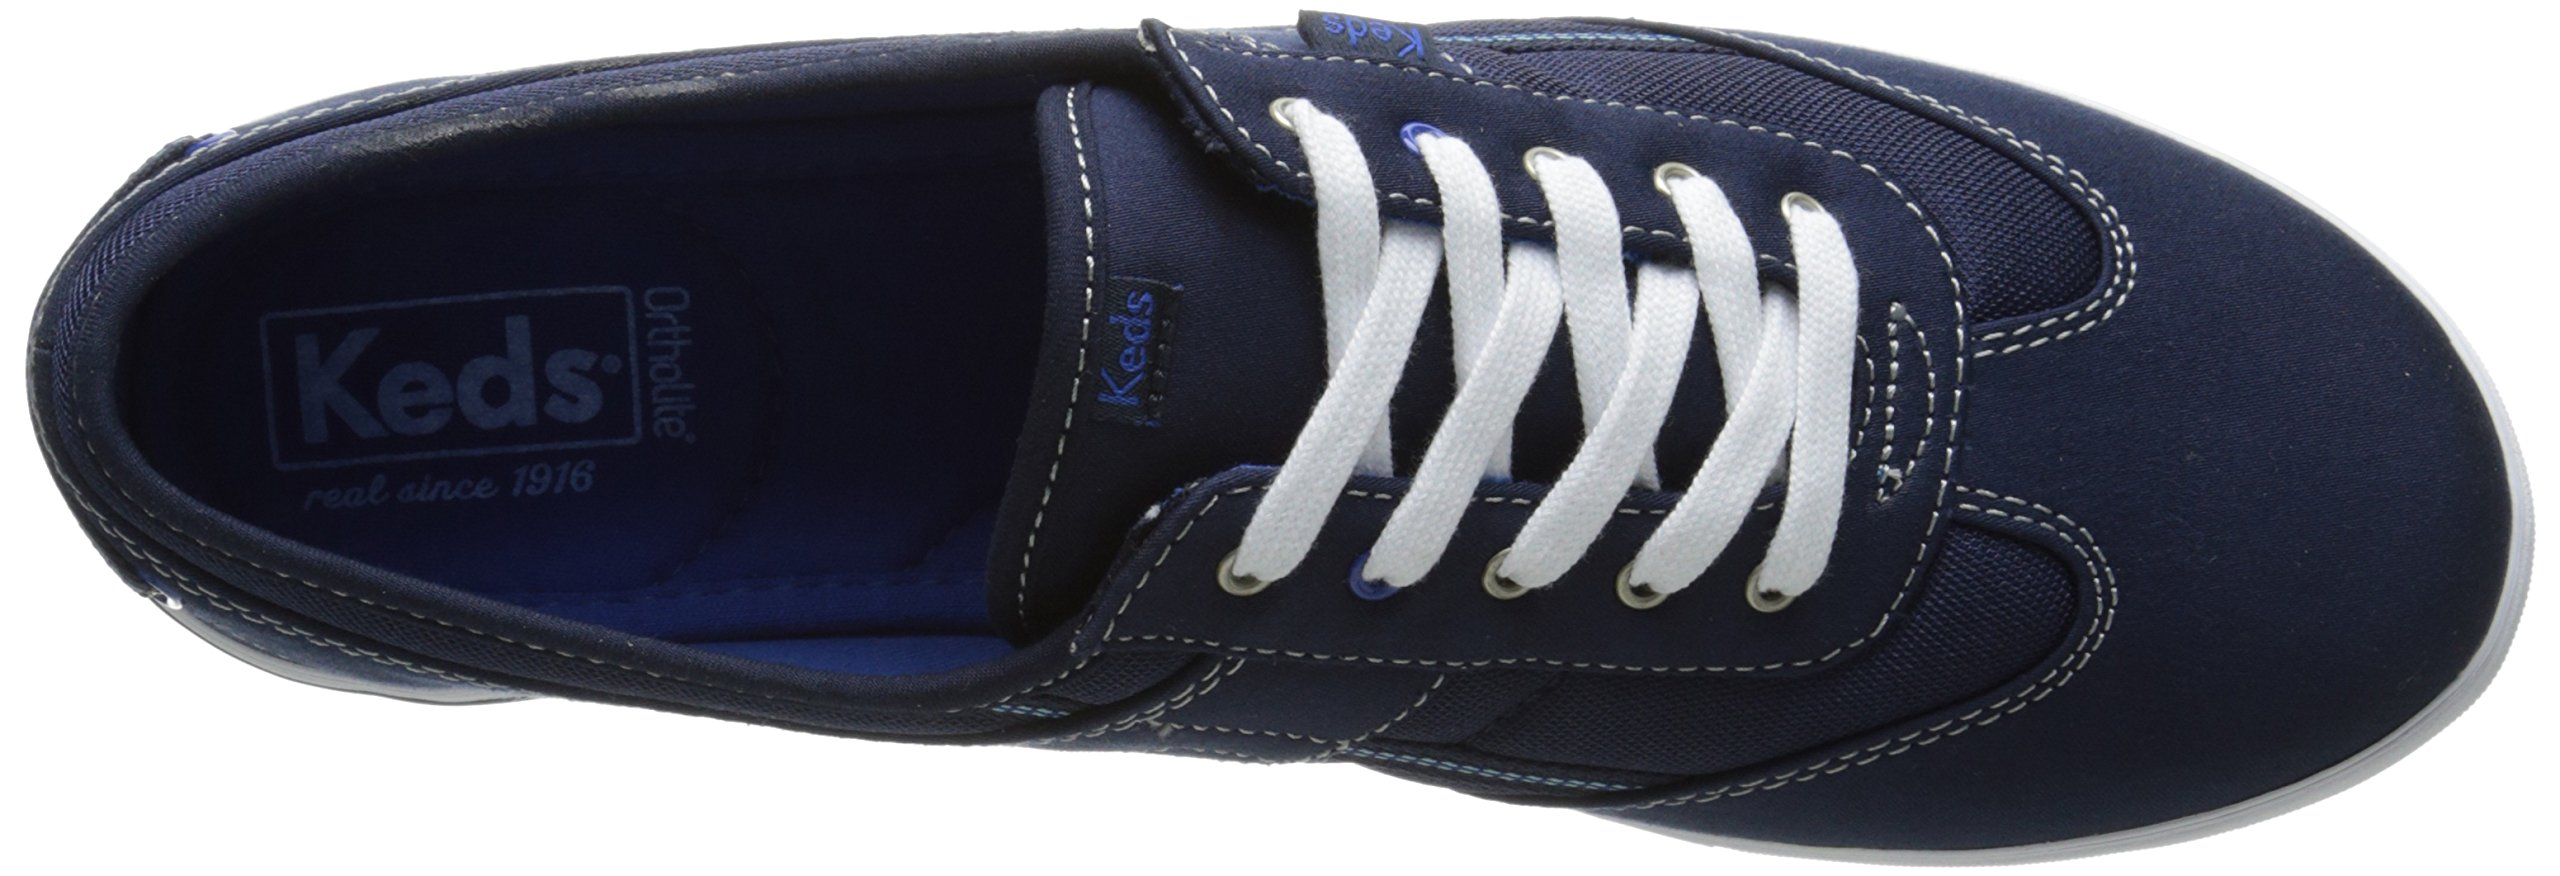 Keds Women's Craze T-Toe Twill Sneaker, Peacoat Navy, 10 M US by Keds (Image #8)